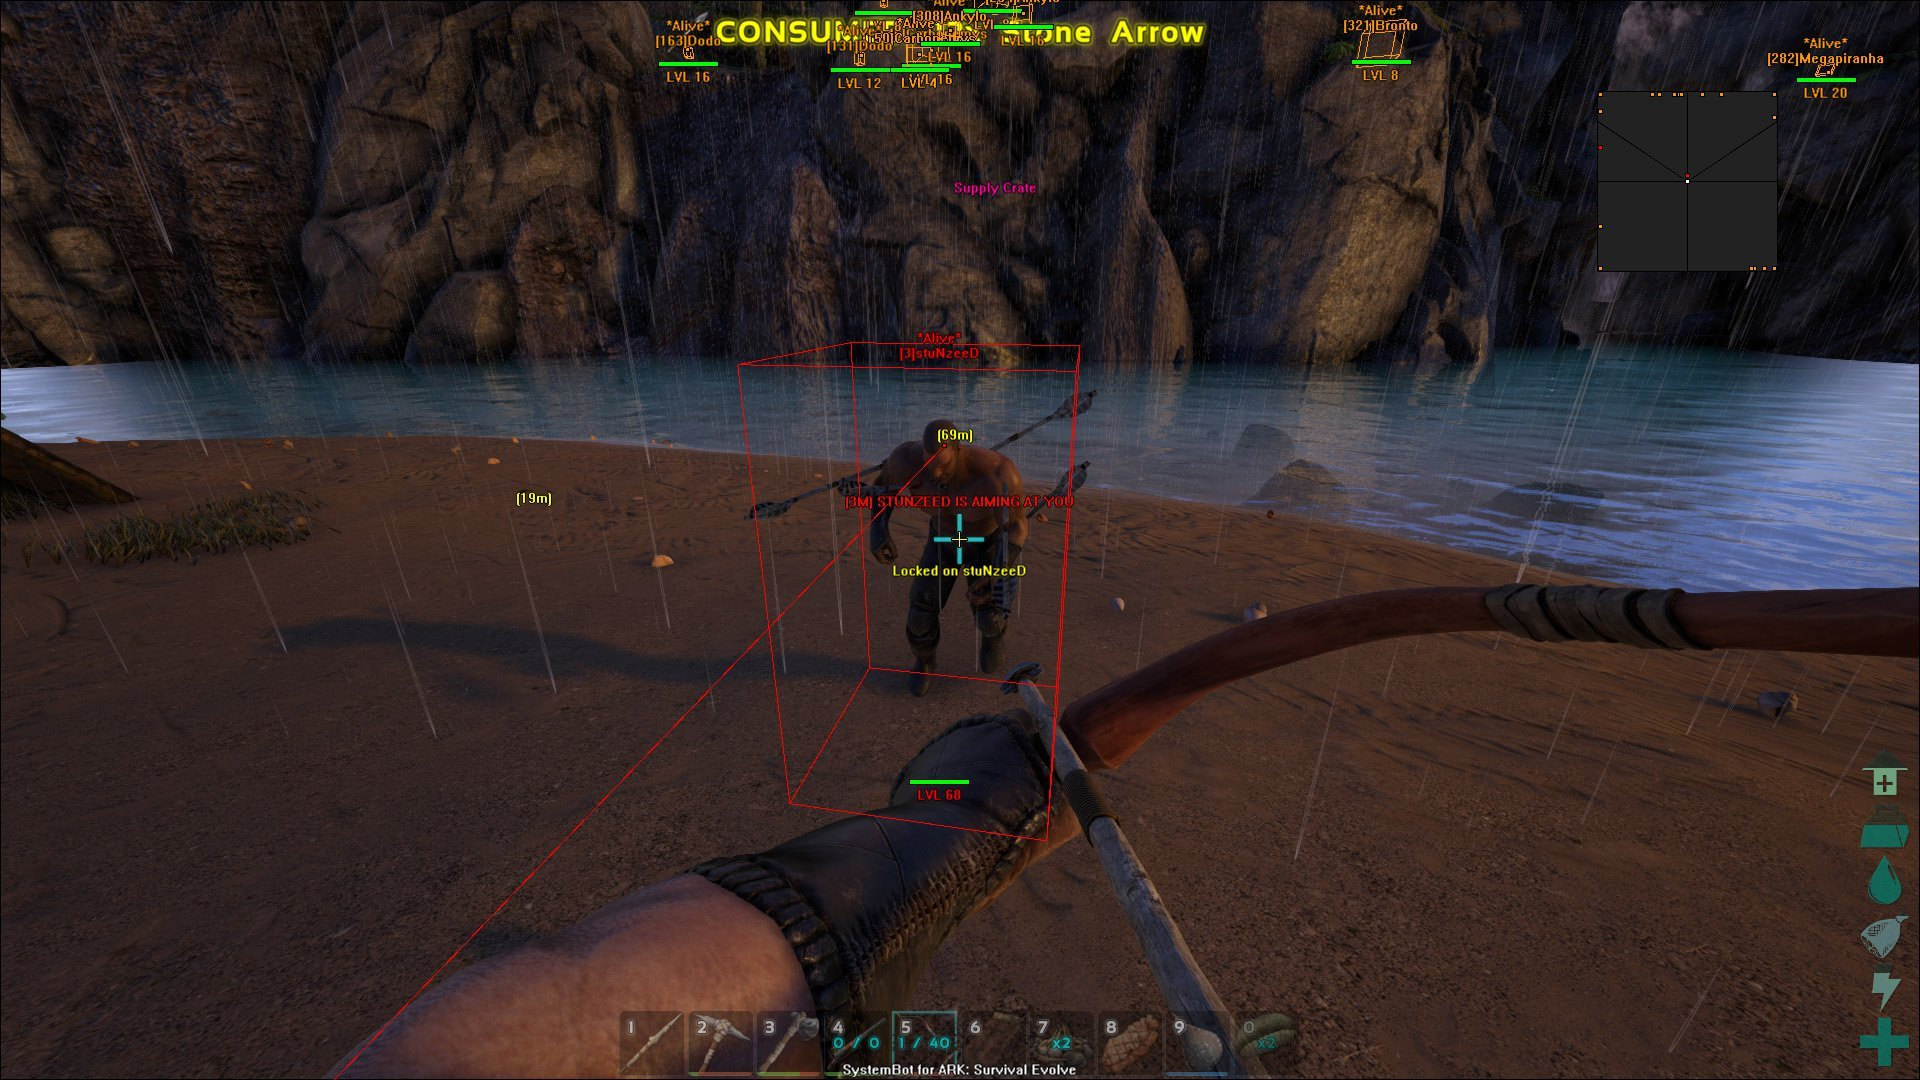 ARK: Survival Evolved Cheat/Hack with Aimbot - SystemCheats